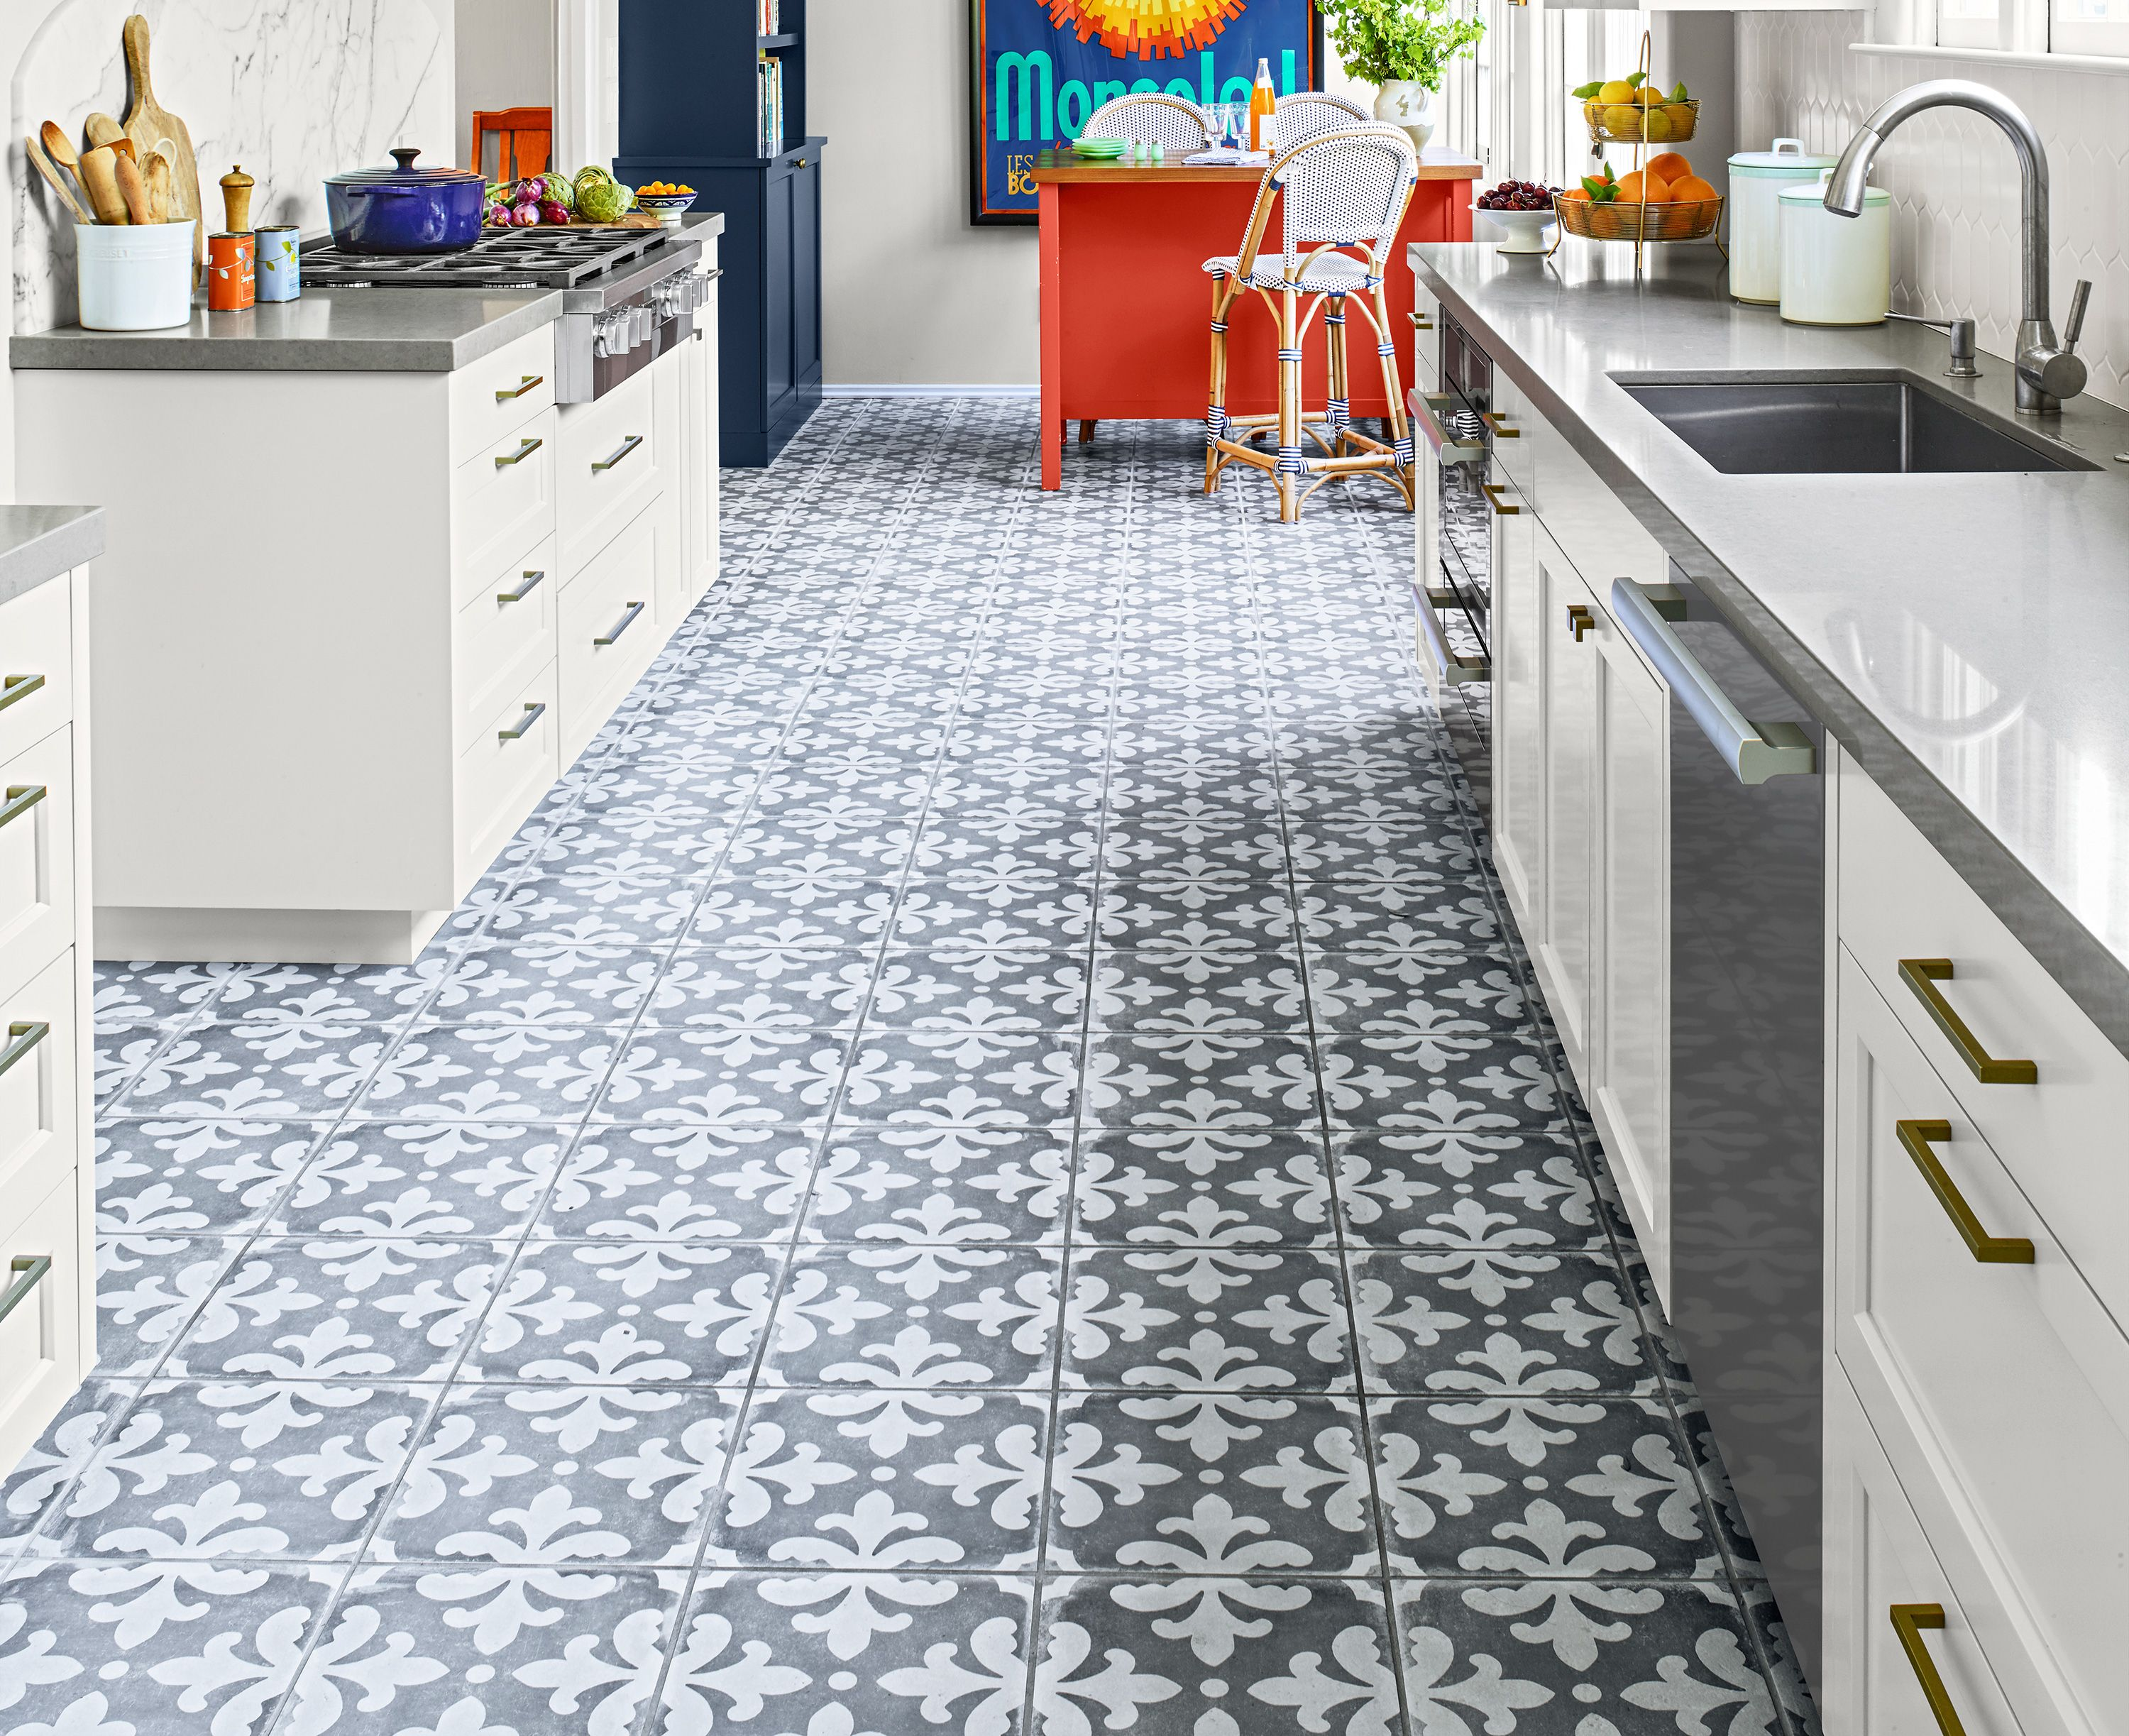 Kitchen Flooring Materials And Ideas This Old House In 2020 Kitchen Flooring Flooring Kitchen Flooring Options